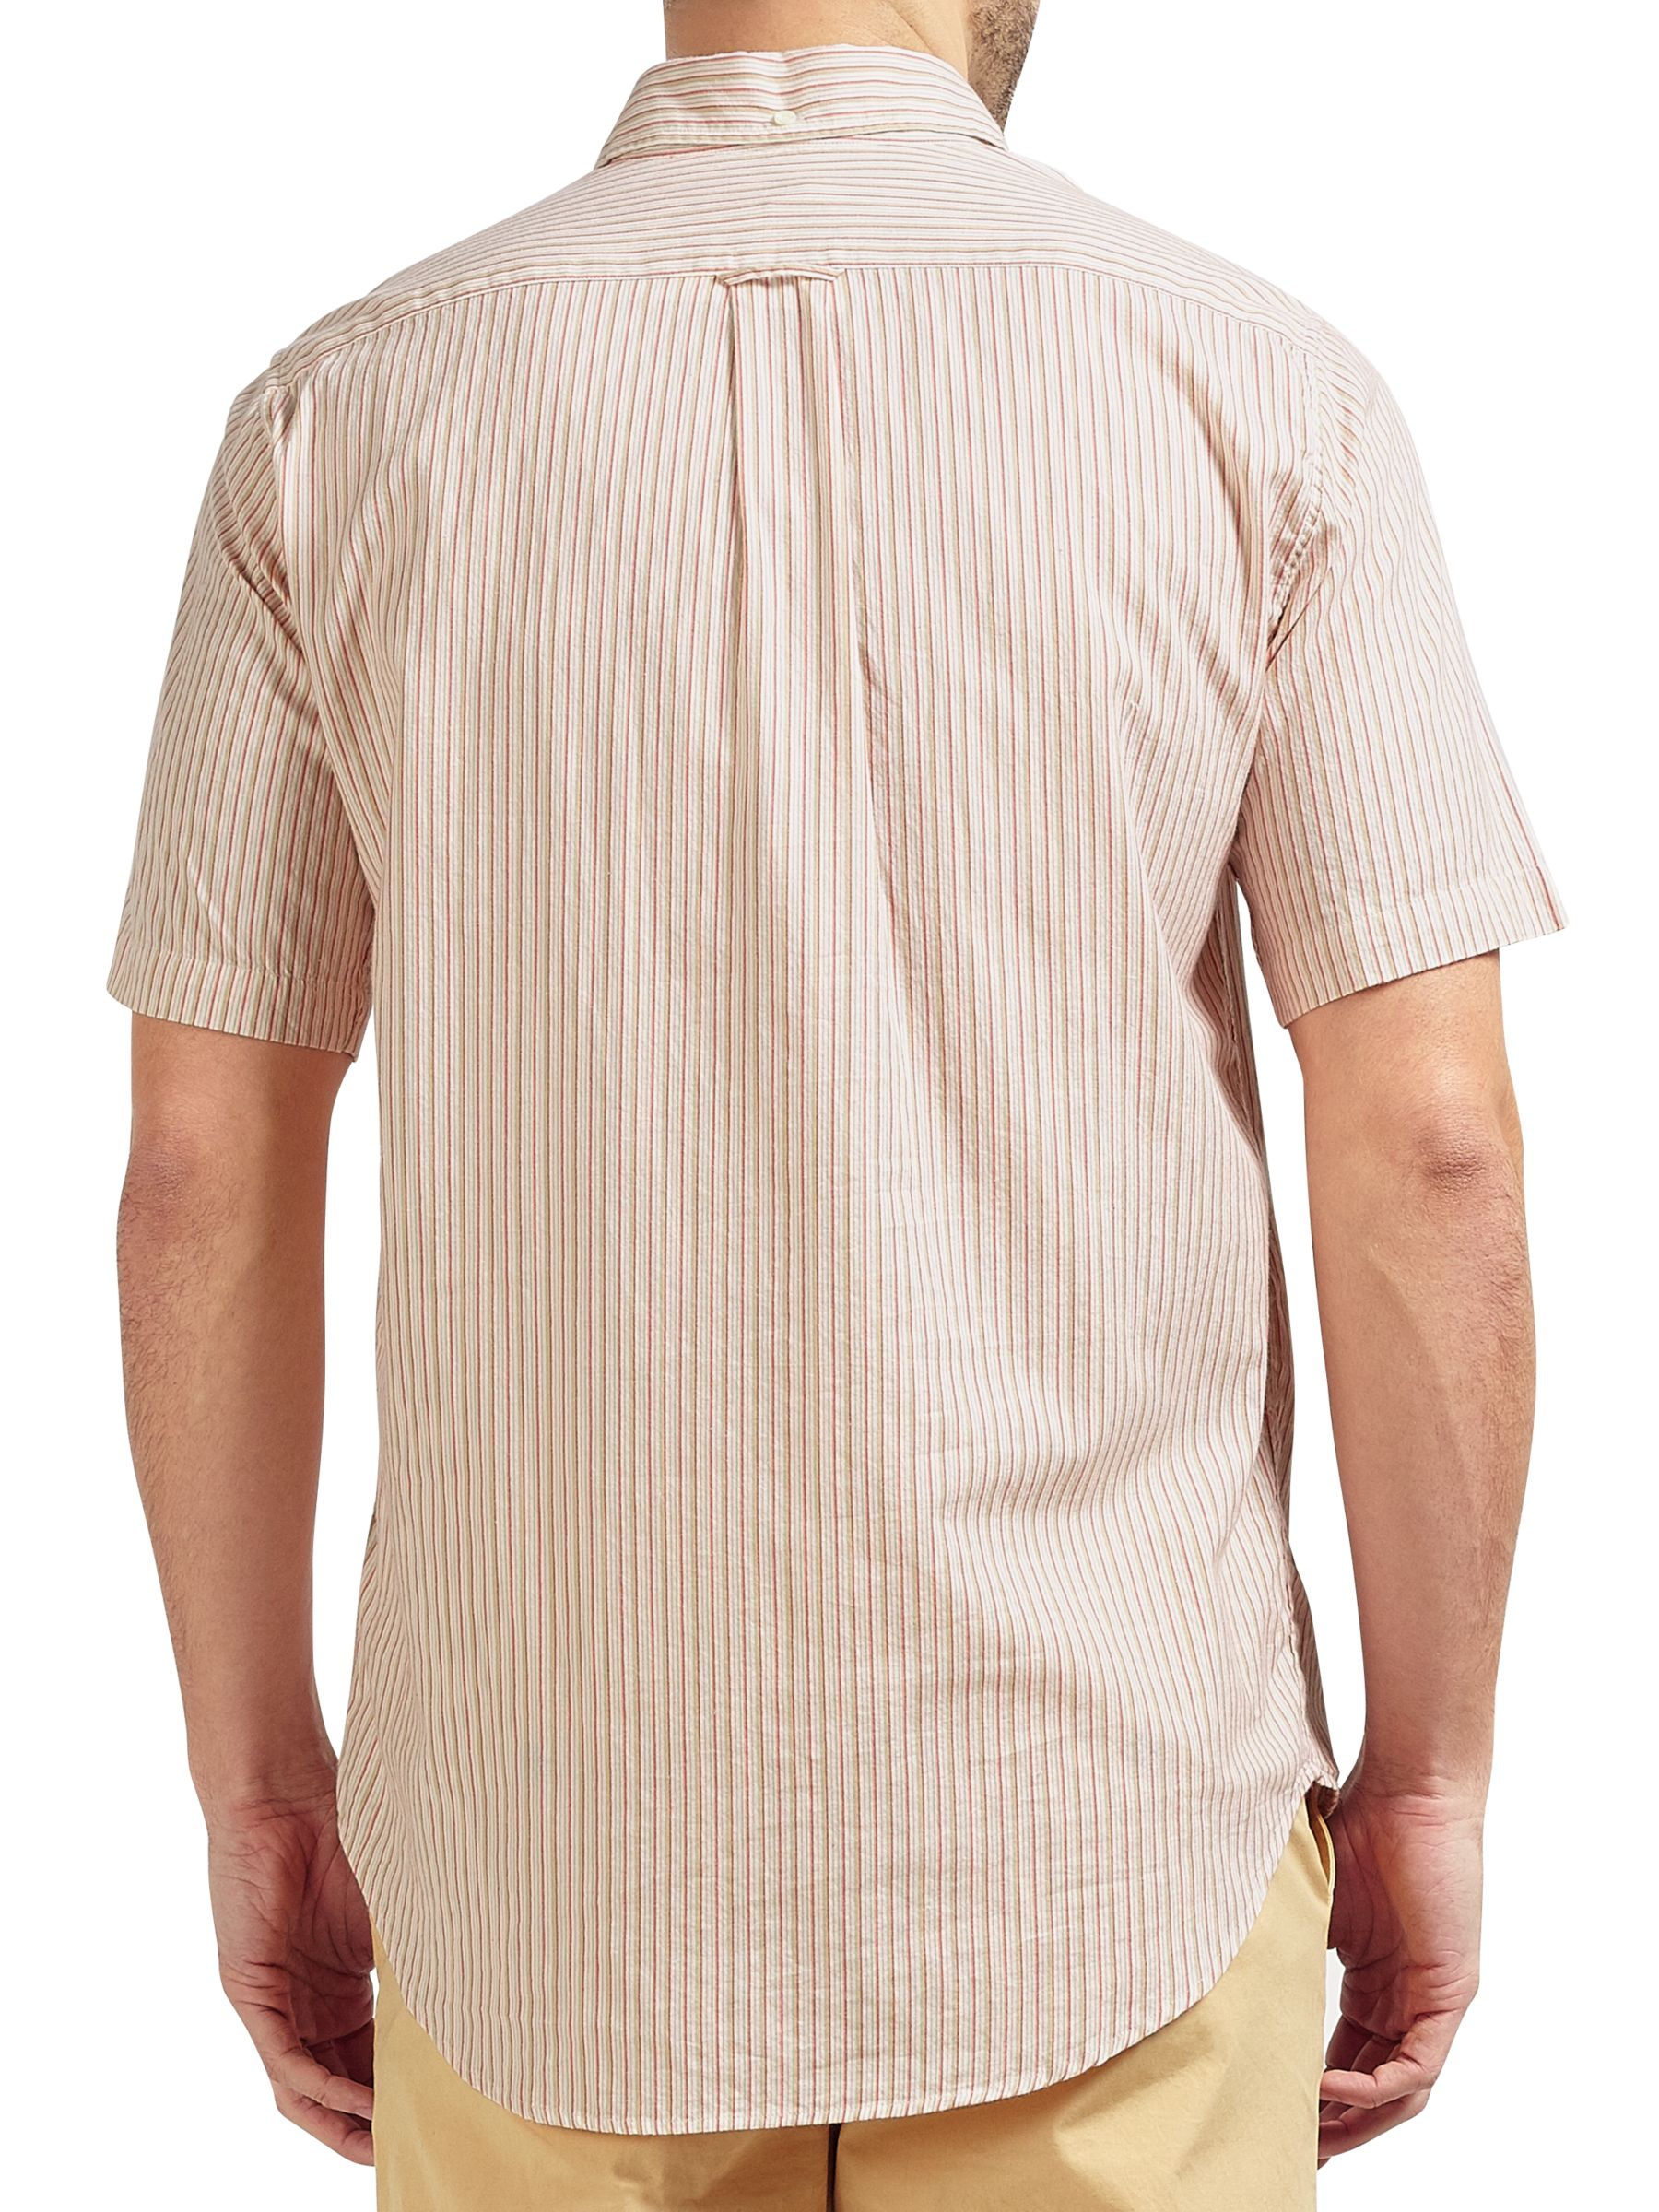 Gant Rugger Gant Rugger Micro Stripe Short Sleeve Shirt, Cream